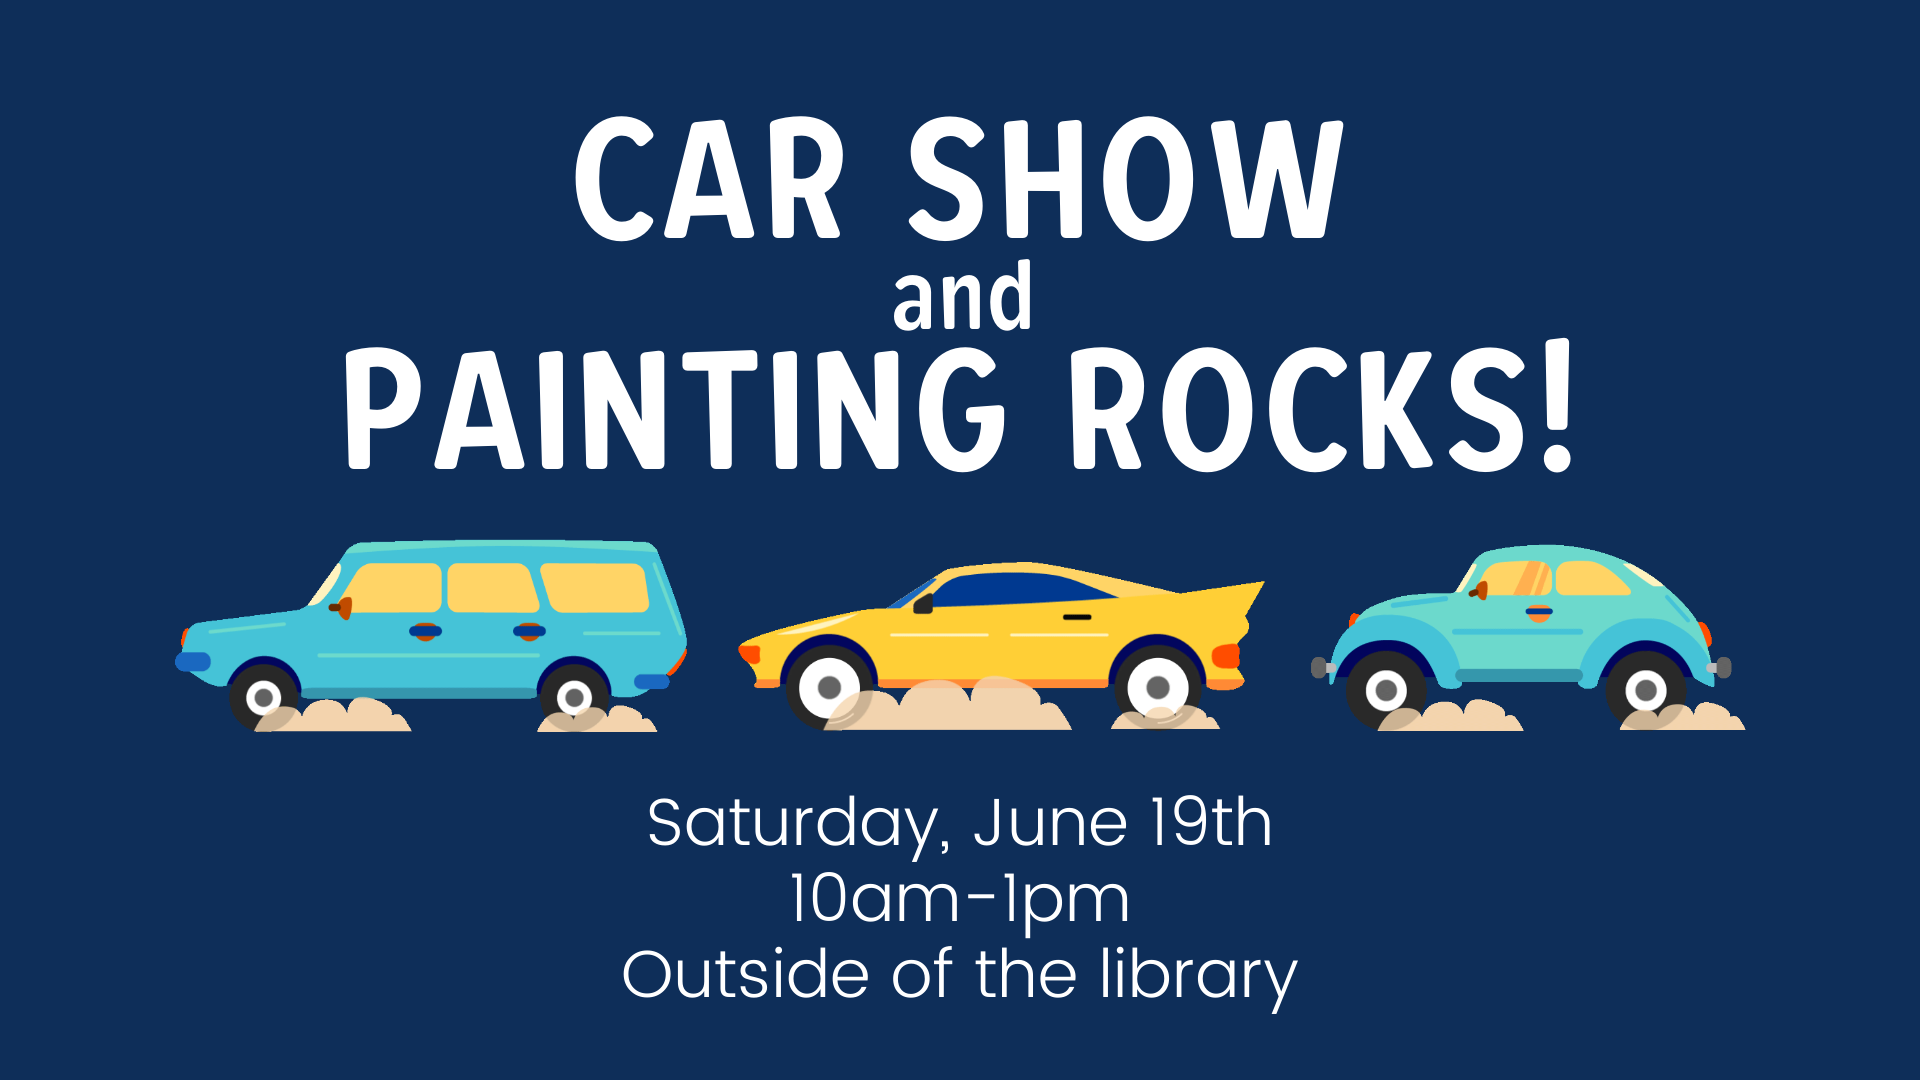 Car Show and Painting Rocks!